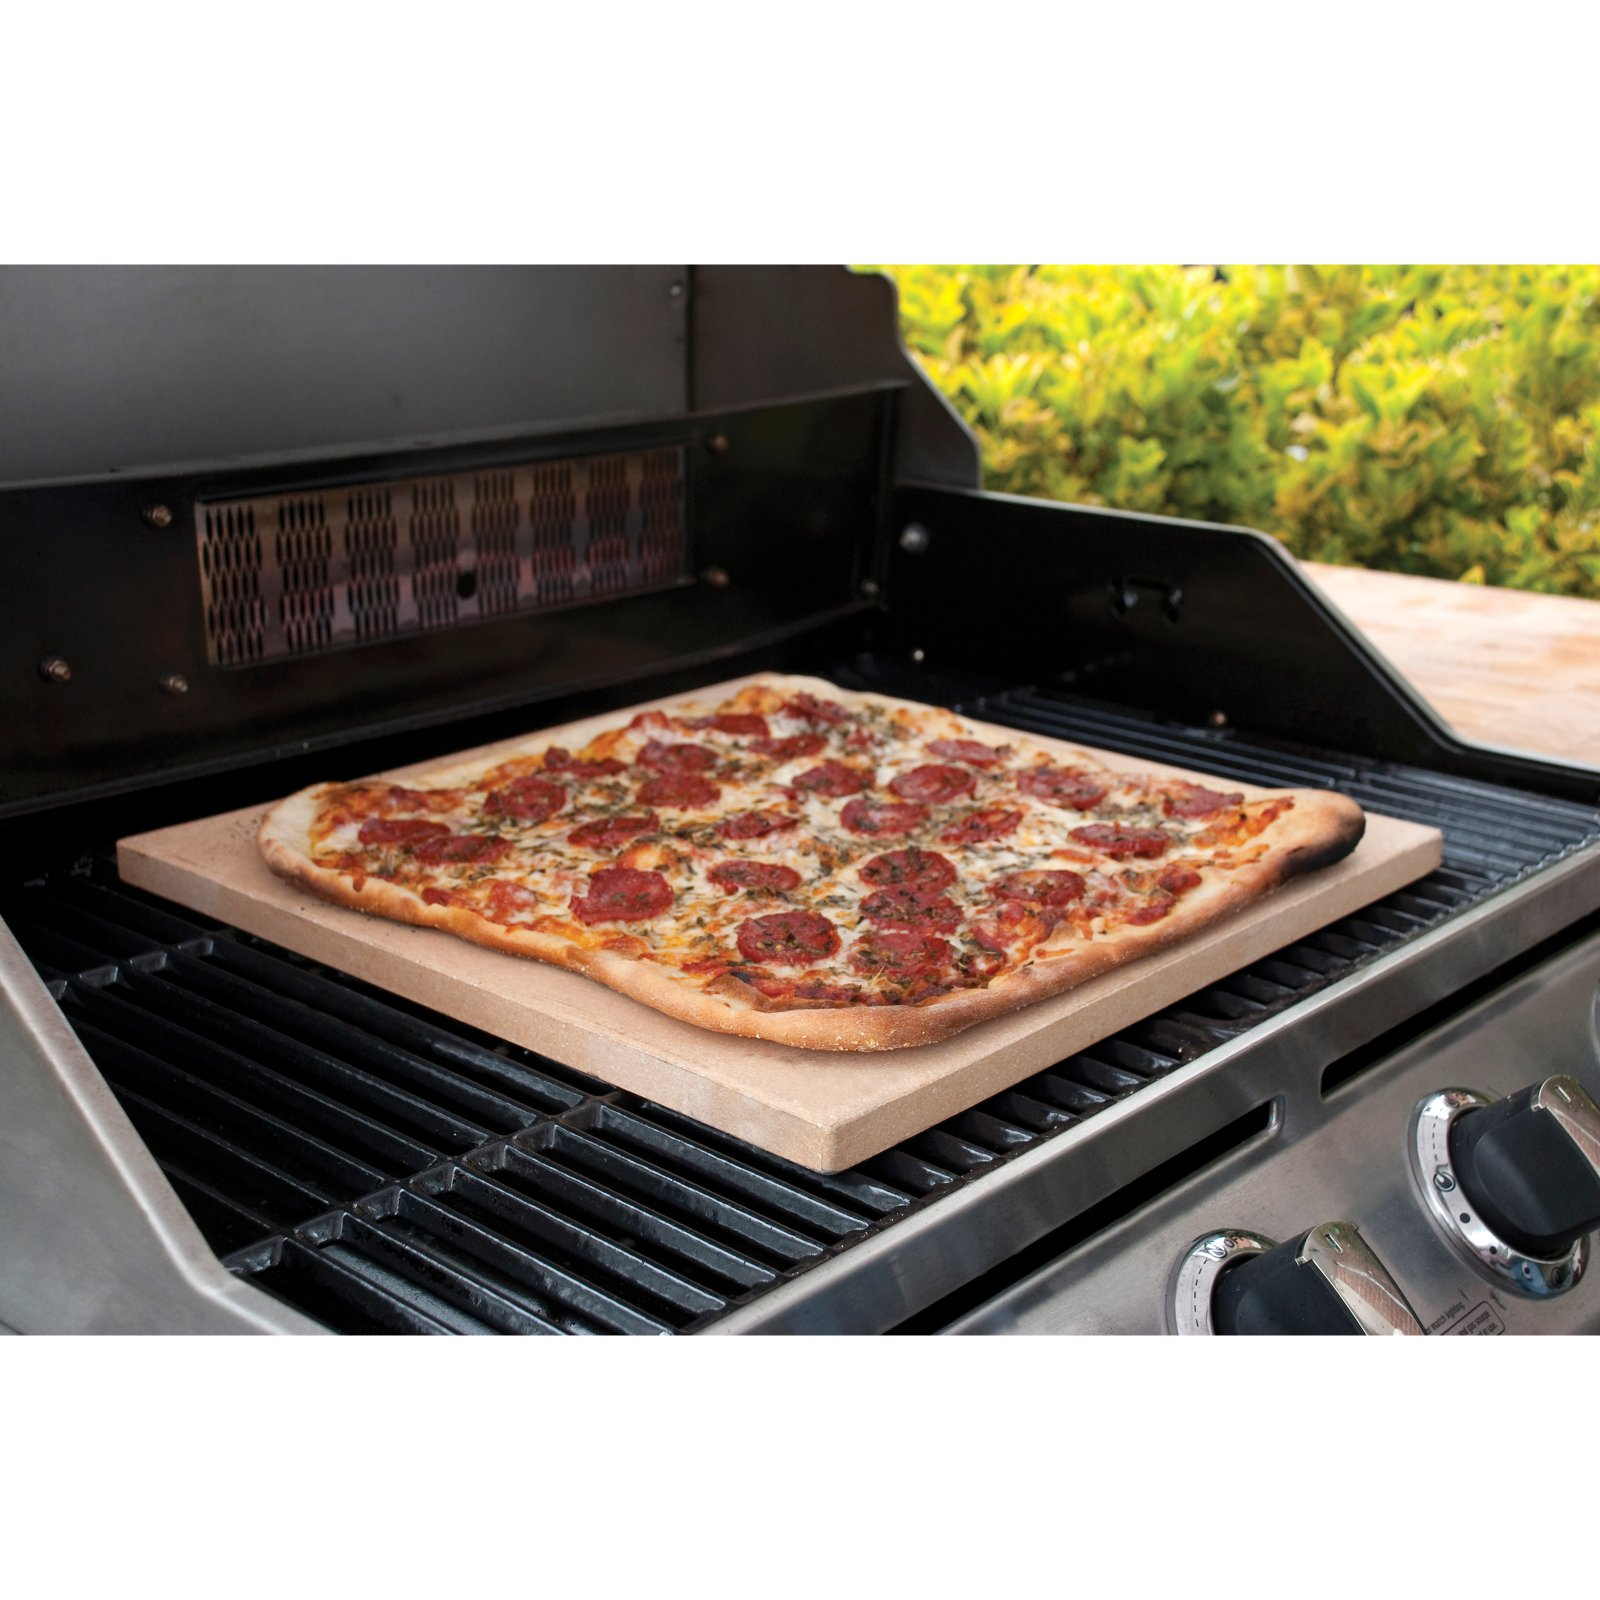 """Pizzacraft 15"""" Square Cordierite Pizza Stone and Baking Stone, For Oven, Grill or BBQ PC0100"""